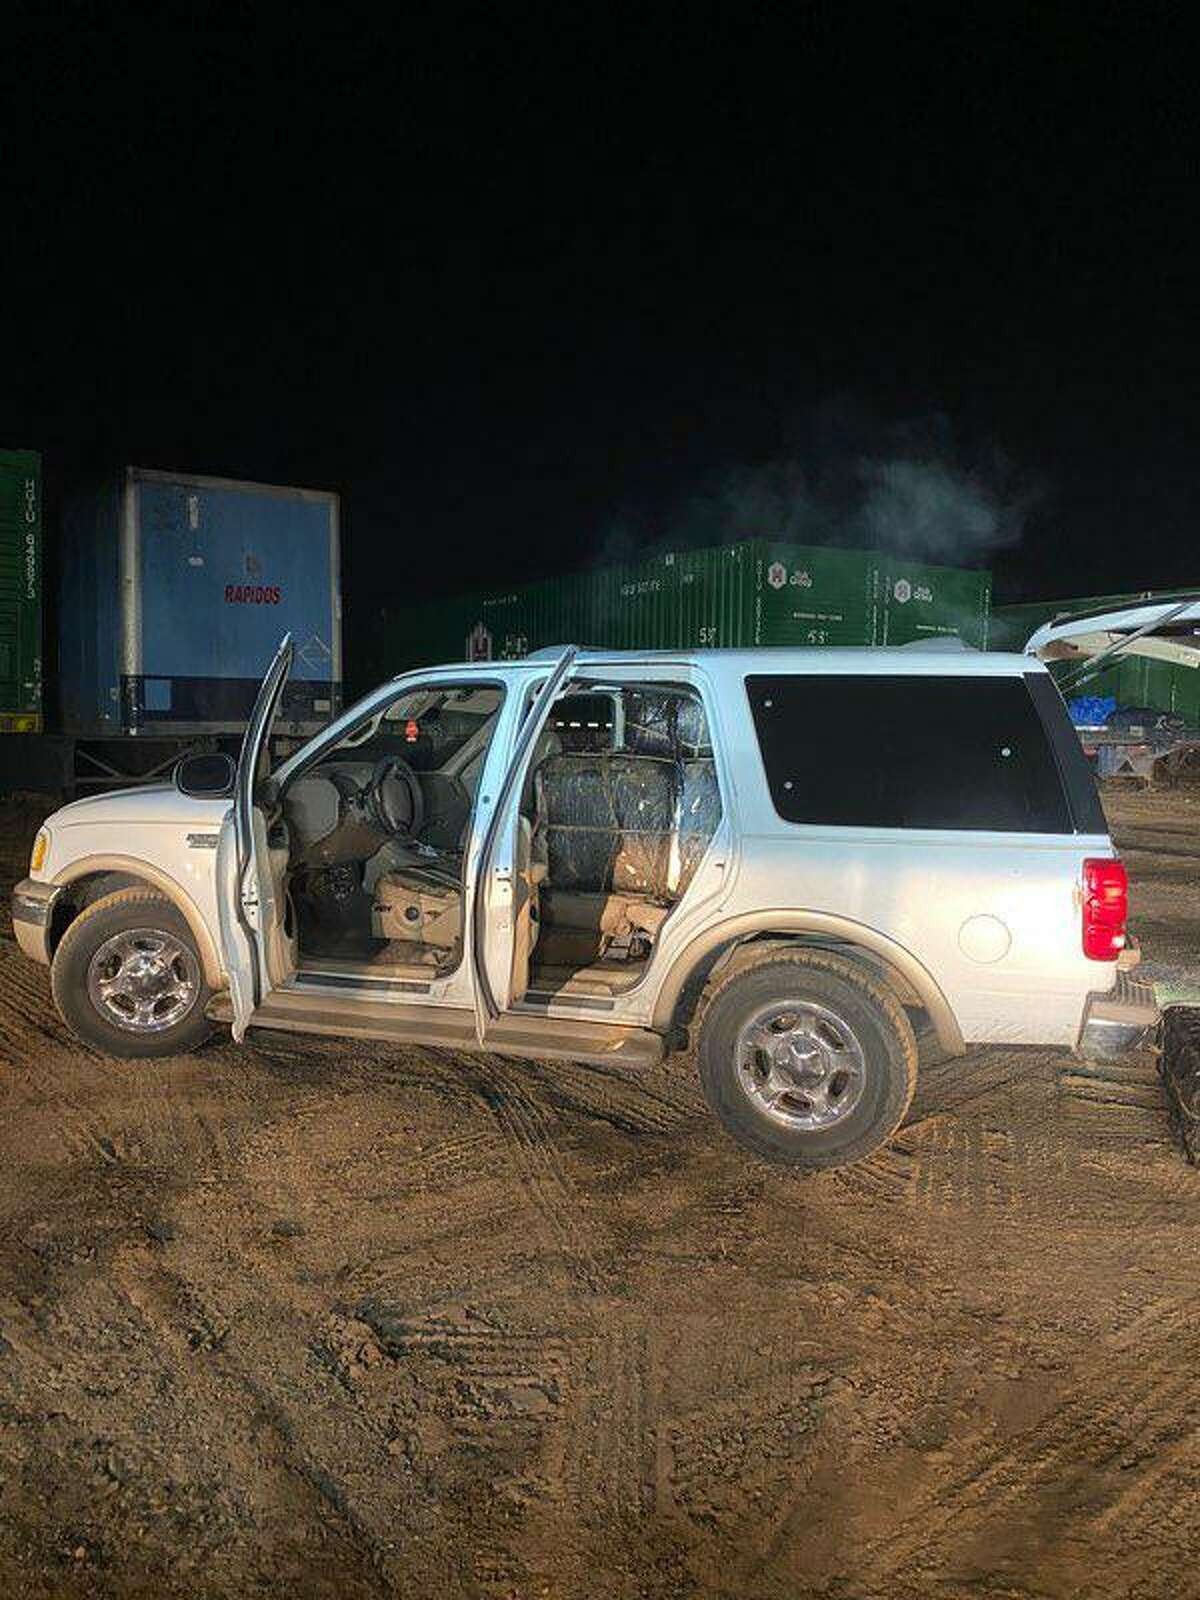 U.S. Border Patrol agents seized more than 600 pounds of marijuana from this vehicle in west Laredo. The suspected drug mules fled into Mexico.